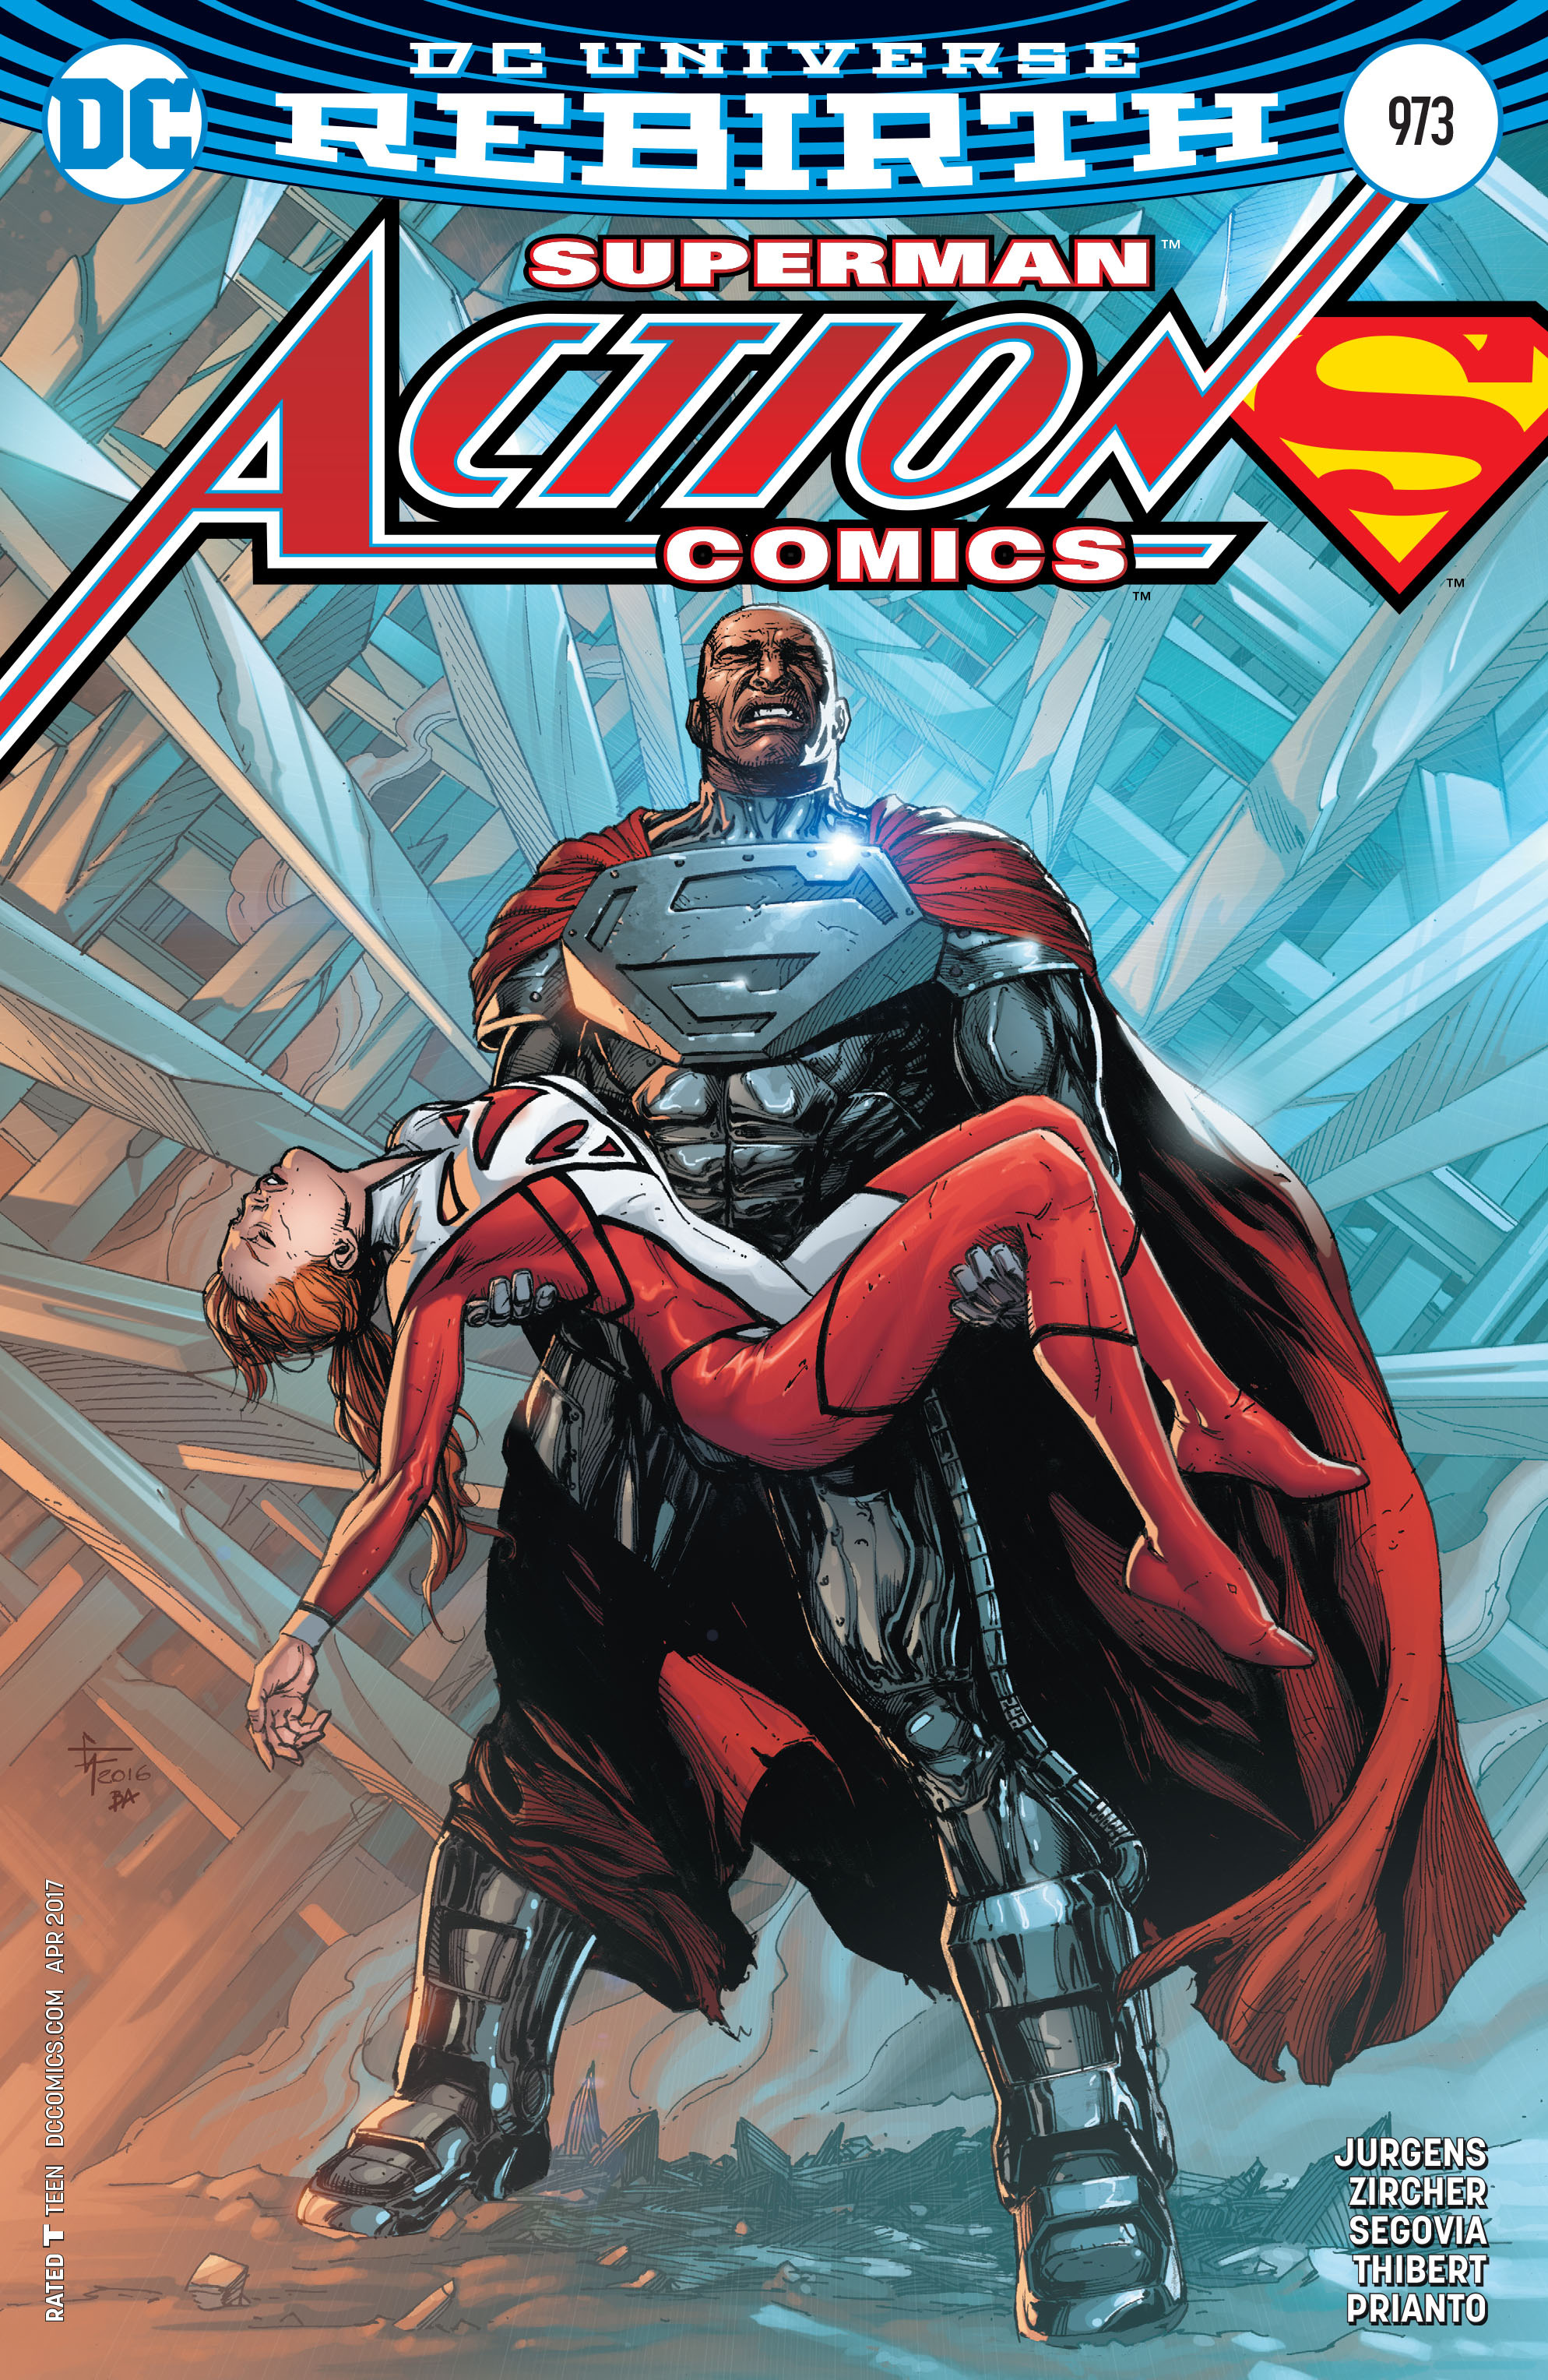 Read online Action Comics (2016) comic -  Issue #973 - 3